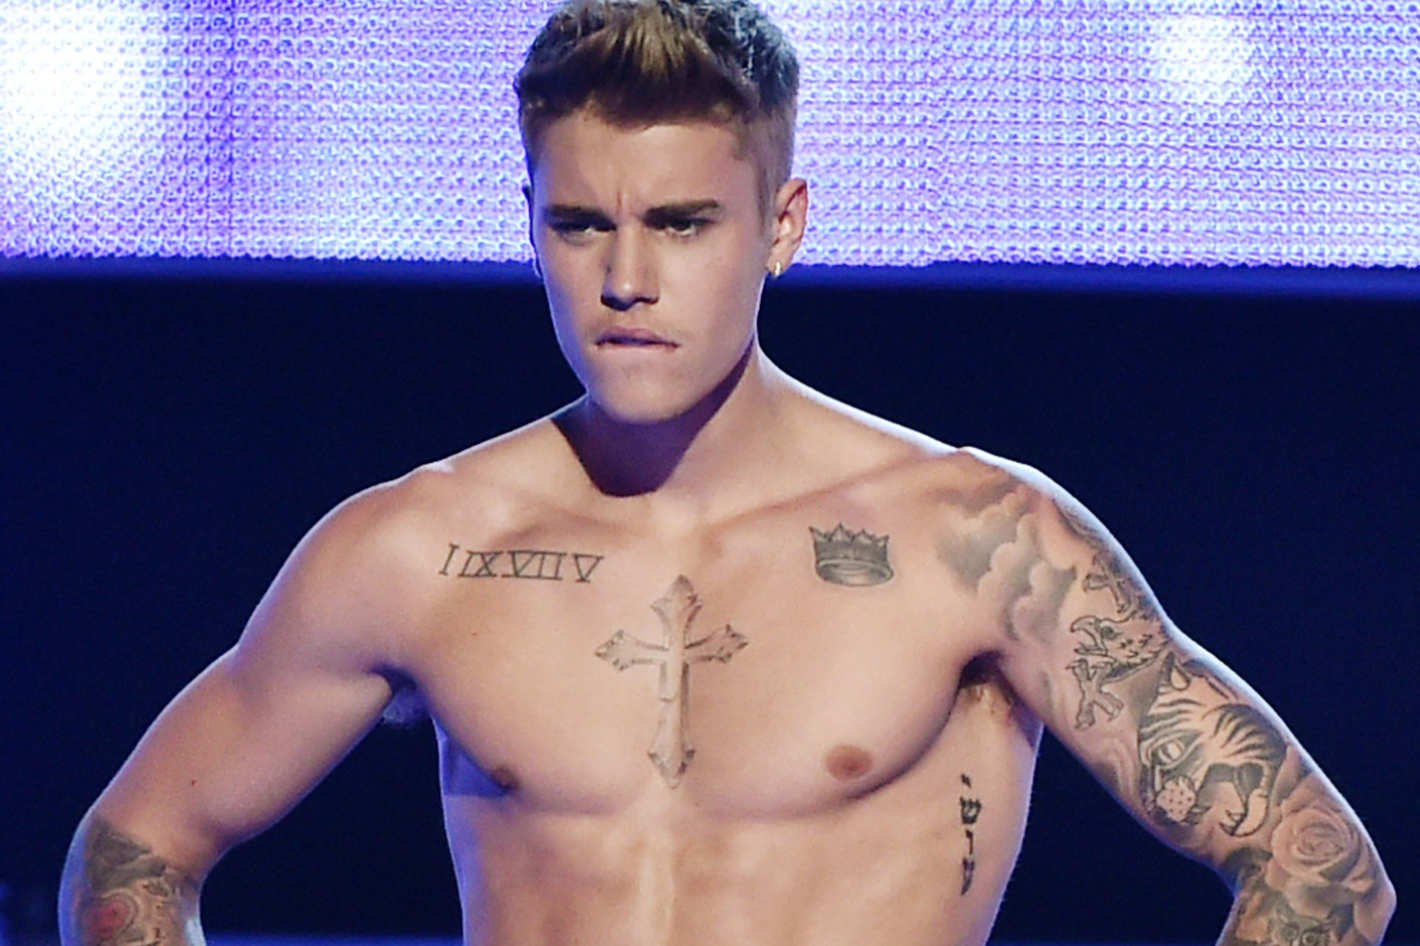 Justin Bieber's Tattoos: A complete guide to all of Biebs' ink